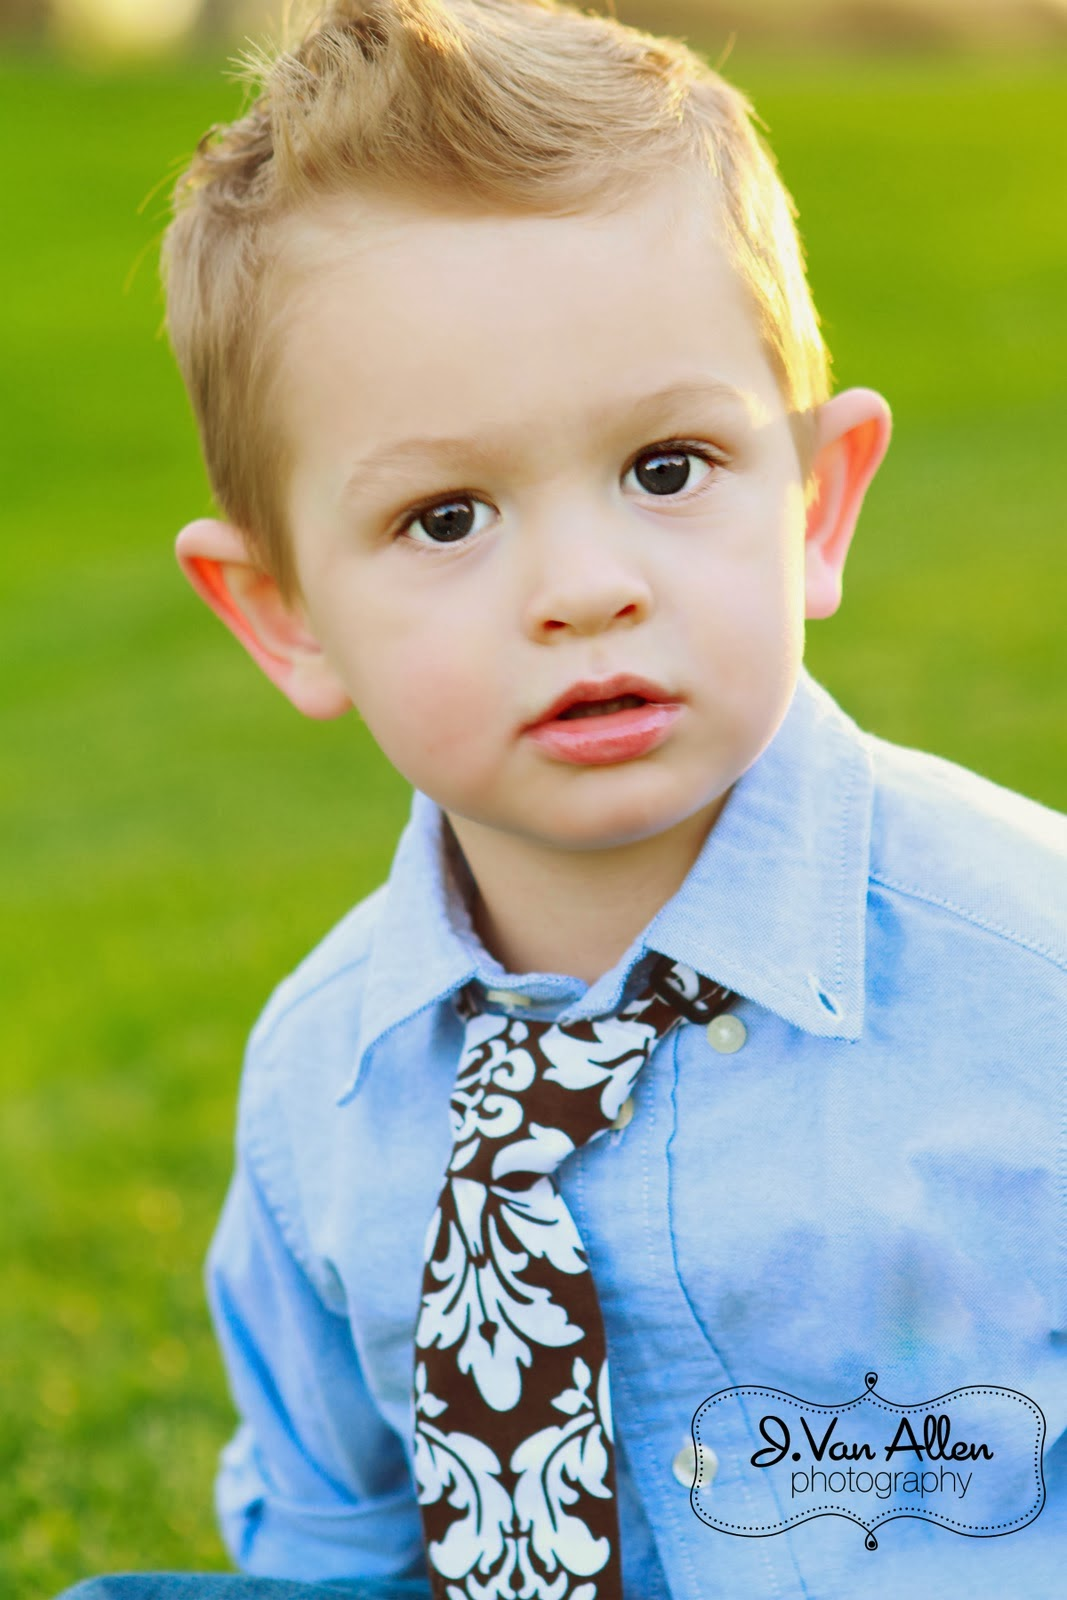 Cool dashing baby boy profile picture for facebook awesomecoverz